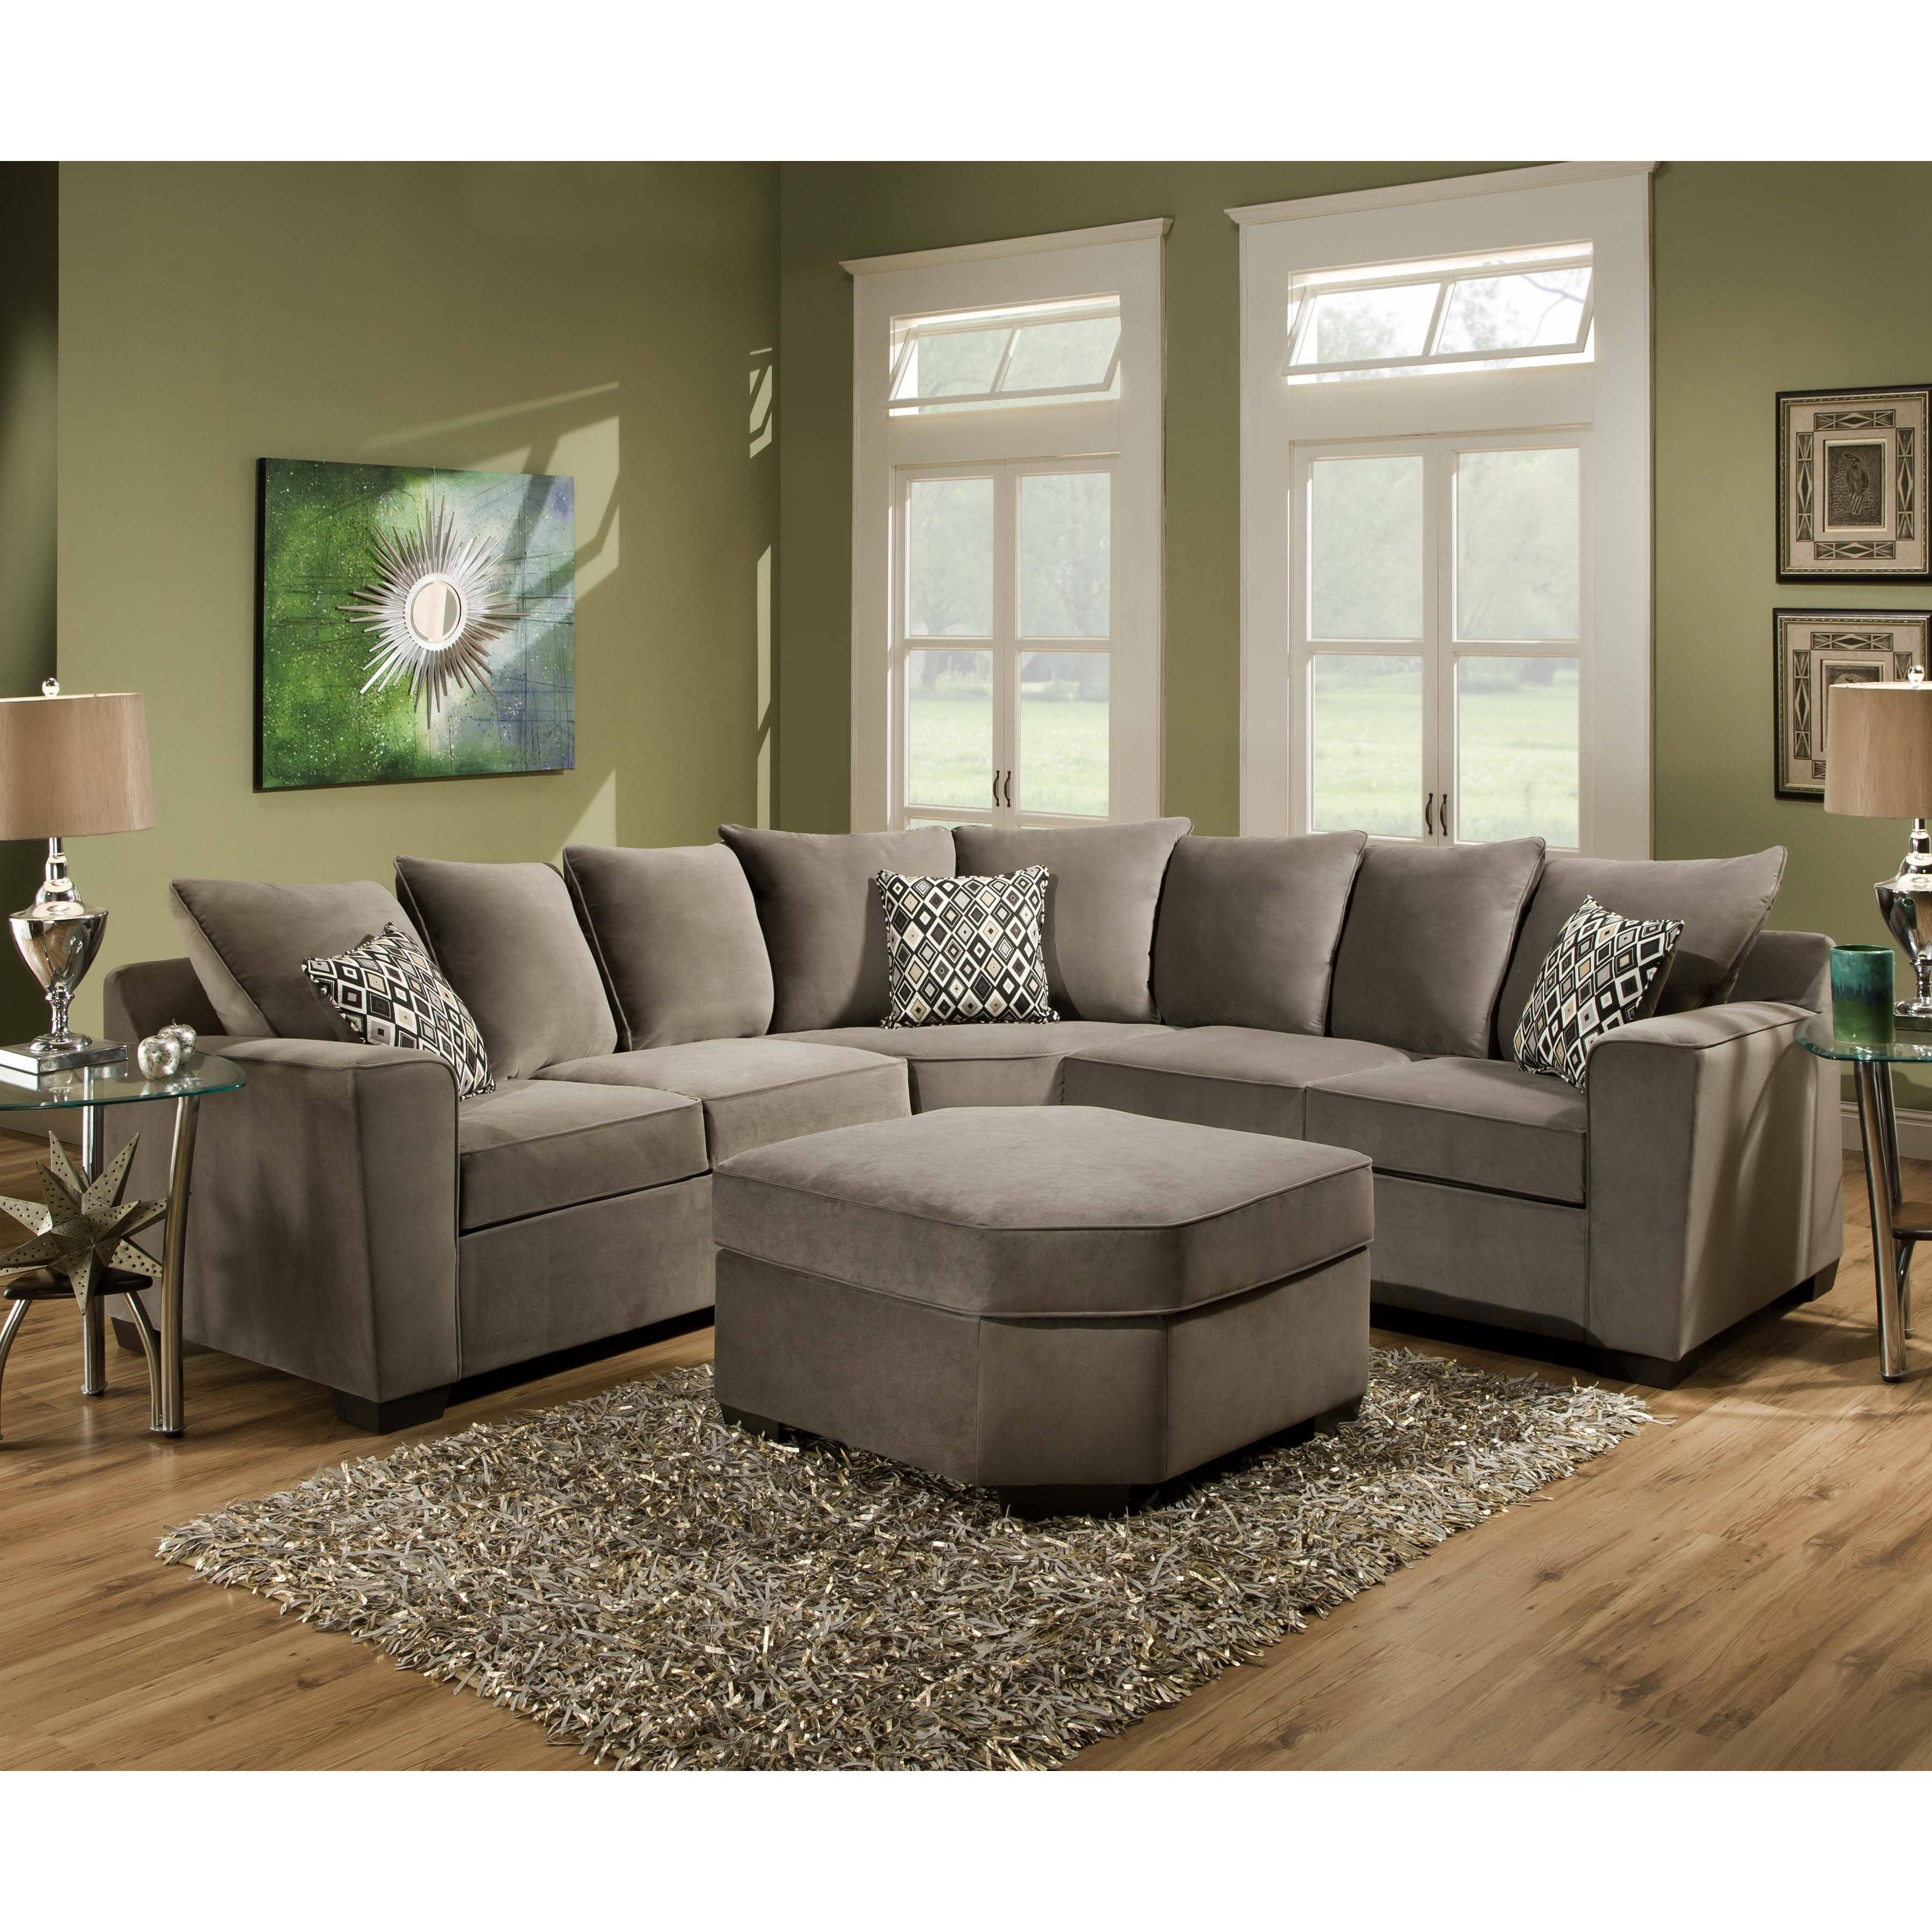 Furniture: Simmons Sectional For Comfortable Seating — Threestems intended for Simmons Sectional Sofas (Image 4 of 30)